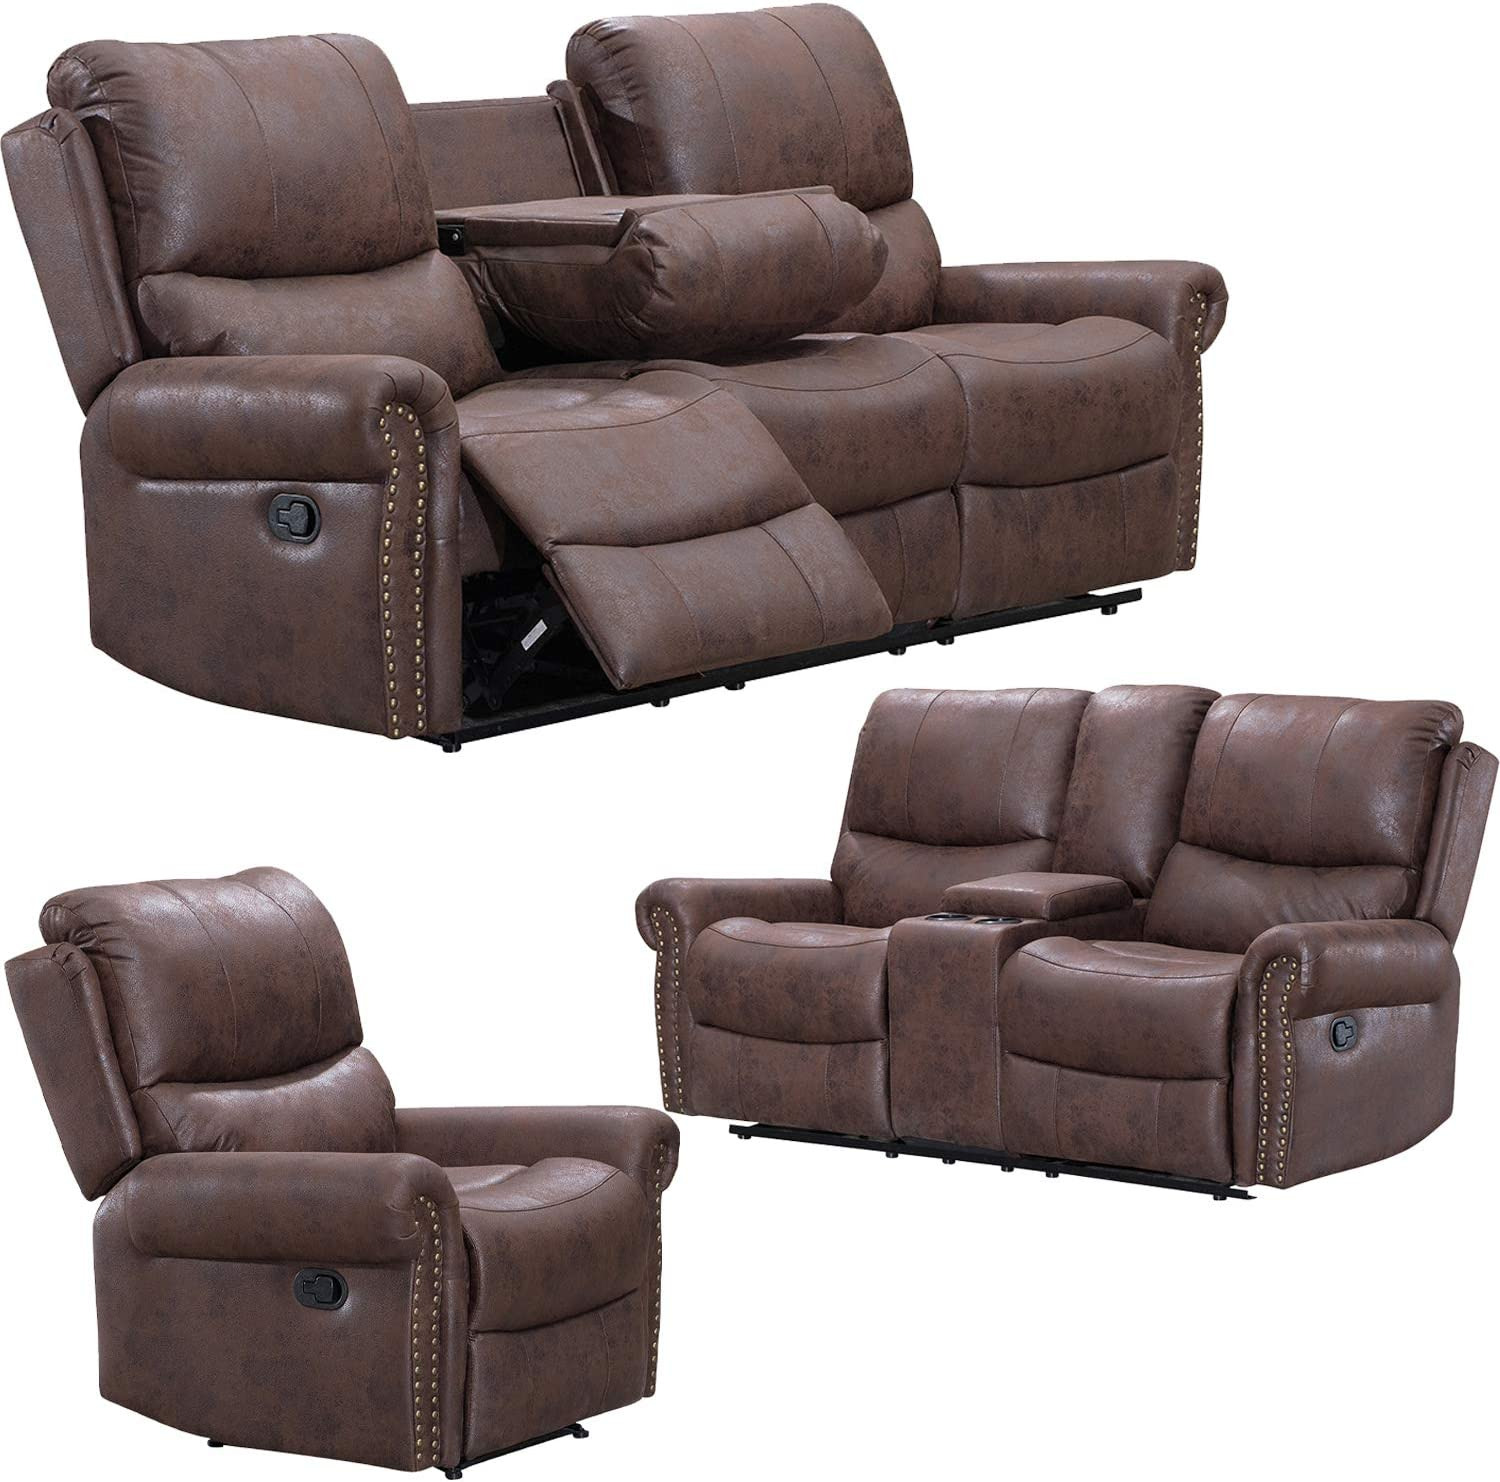 Brown,3 Piece Set Ainehome Recliner Sofa Bonded Leather Set 3 PCS Motion Sofa Loveseat Recliner Sofa Recliner Couch Manual Reclining Chair 3 Seater for Living Room